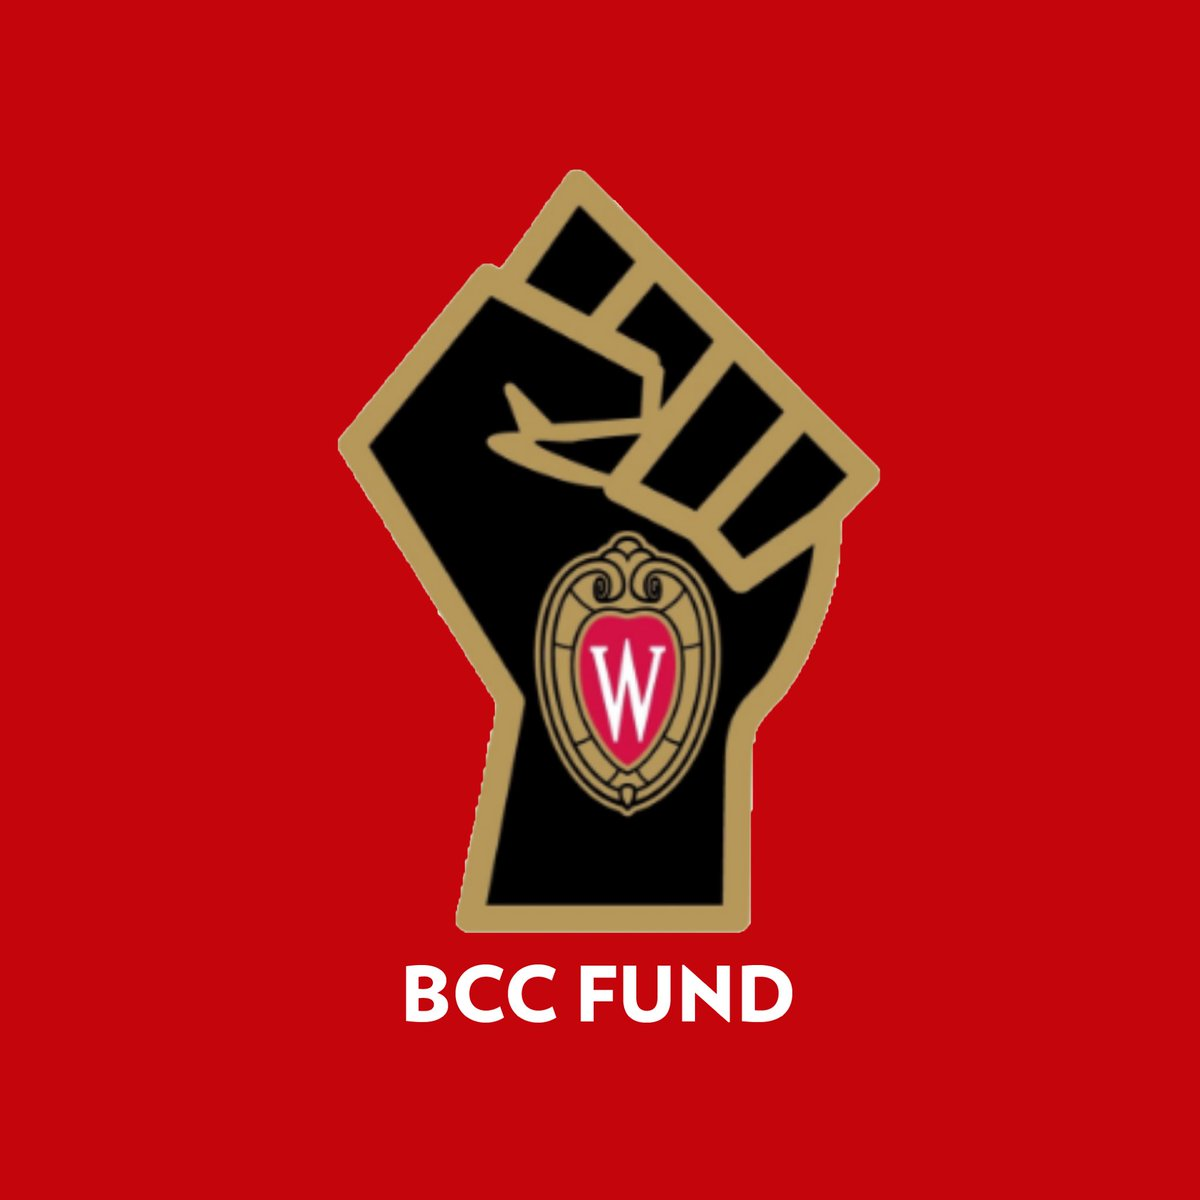 Today, along with @uwmadisonbcc, we are launching the Black Cultural Center fund. Join us in supporting programming and initiatives that uplift and affirm the voices, experiences, and dynamic lives of Black students at @UWMadison : go.wisc.edu/bccfund #uwbccfund